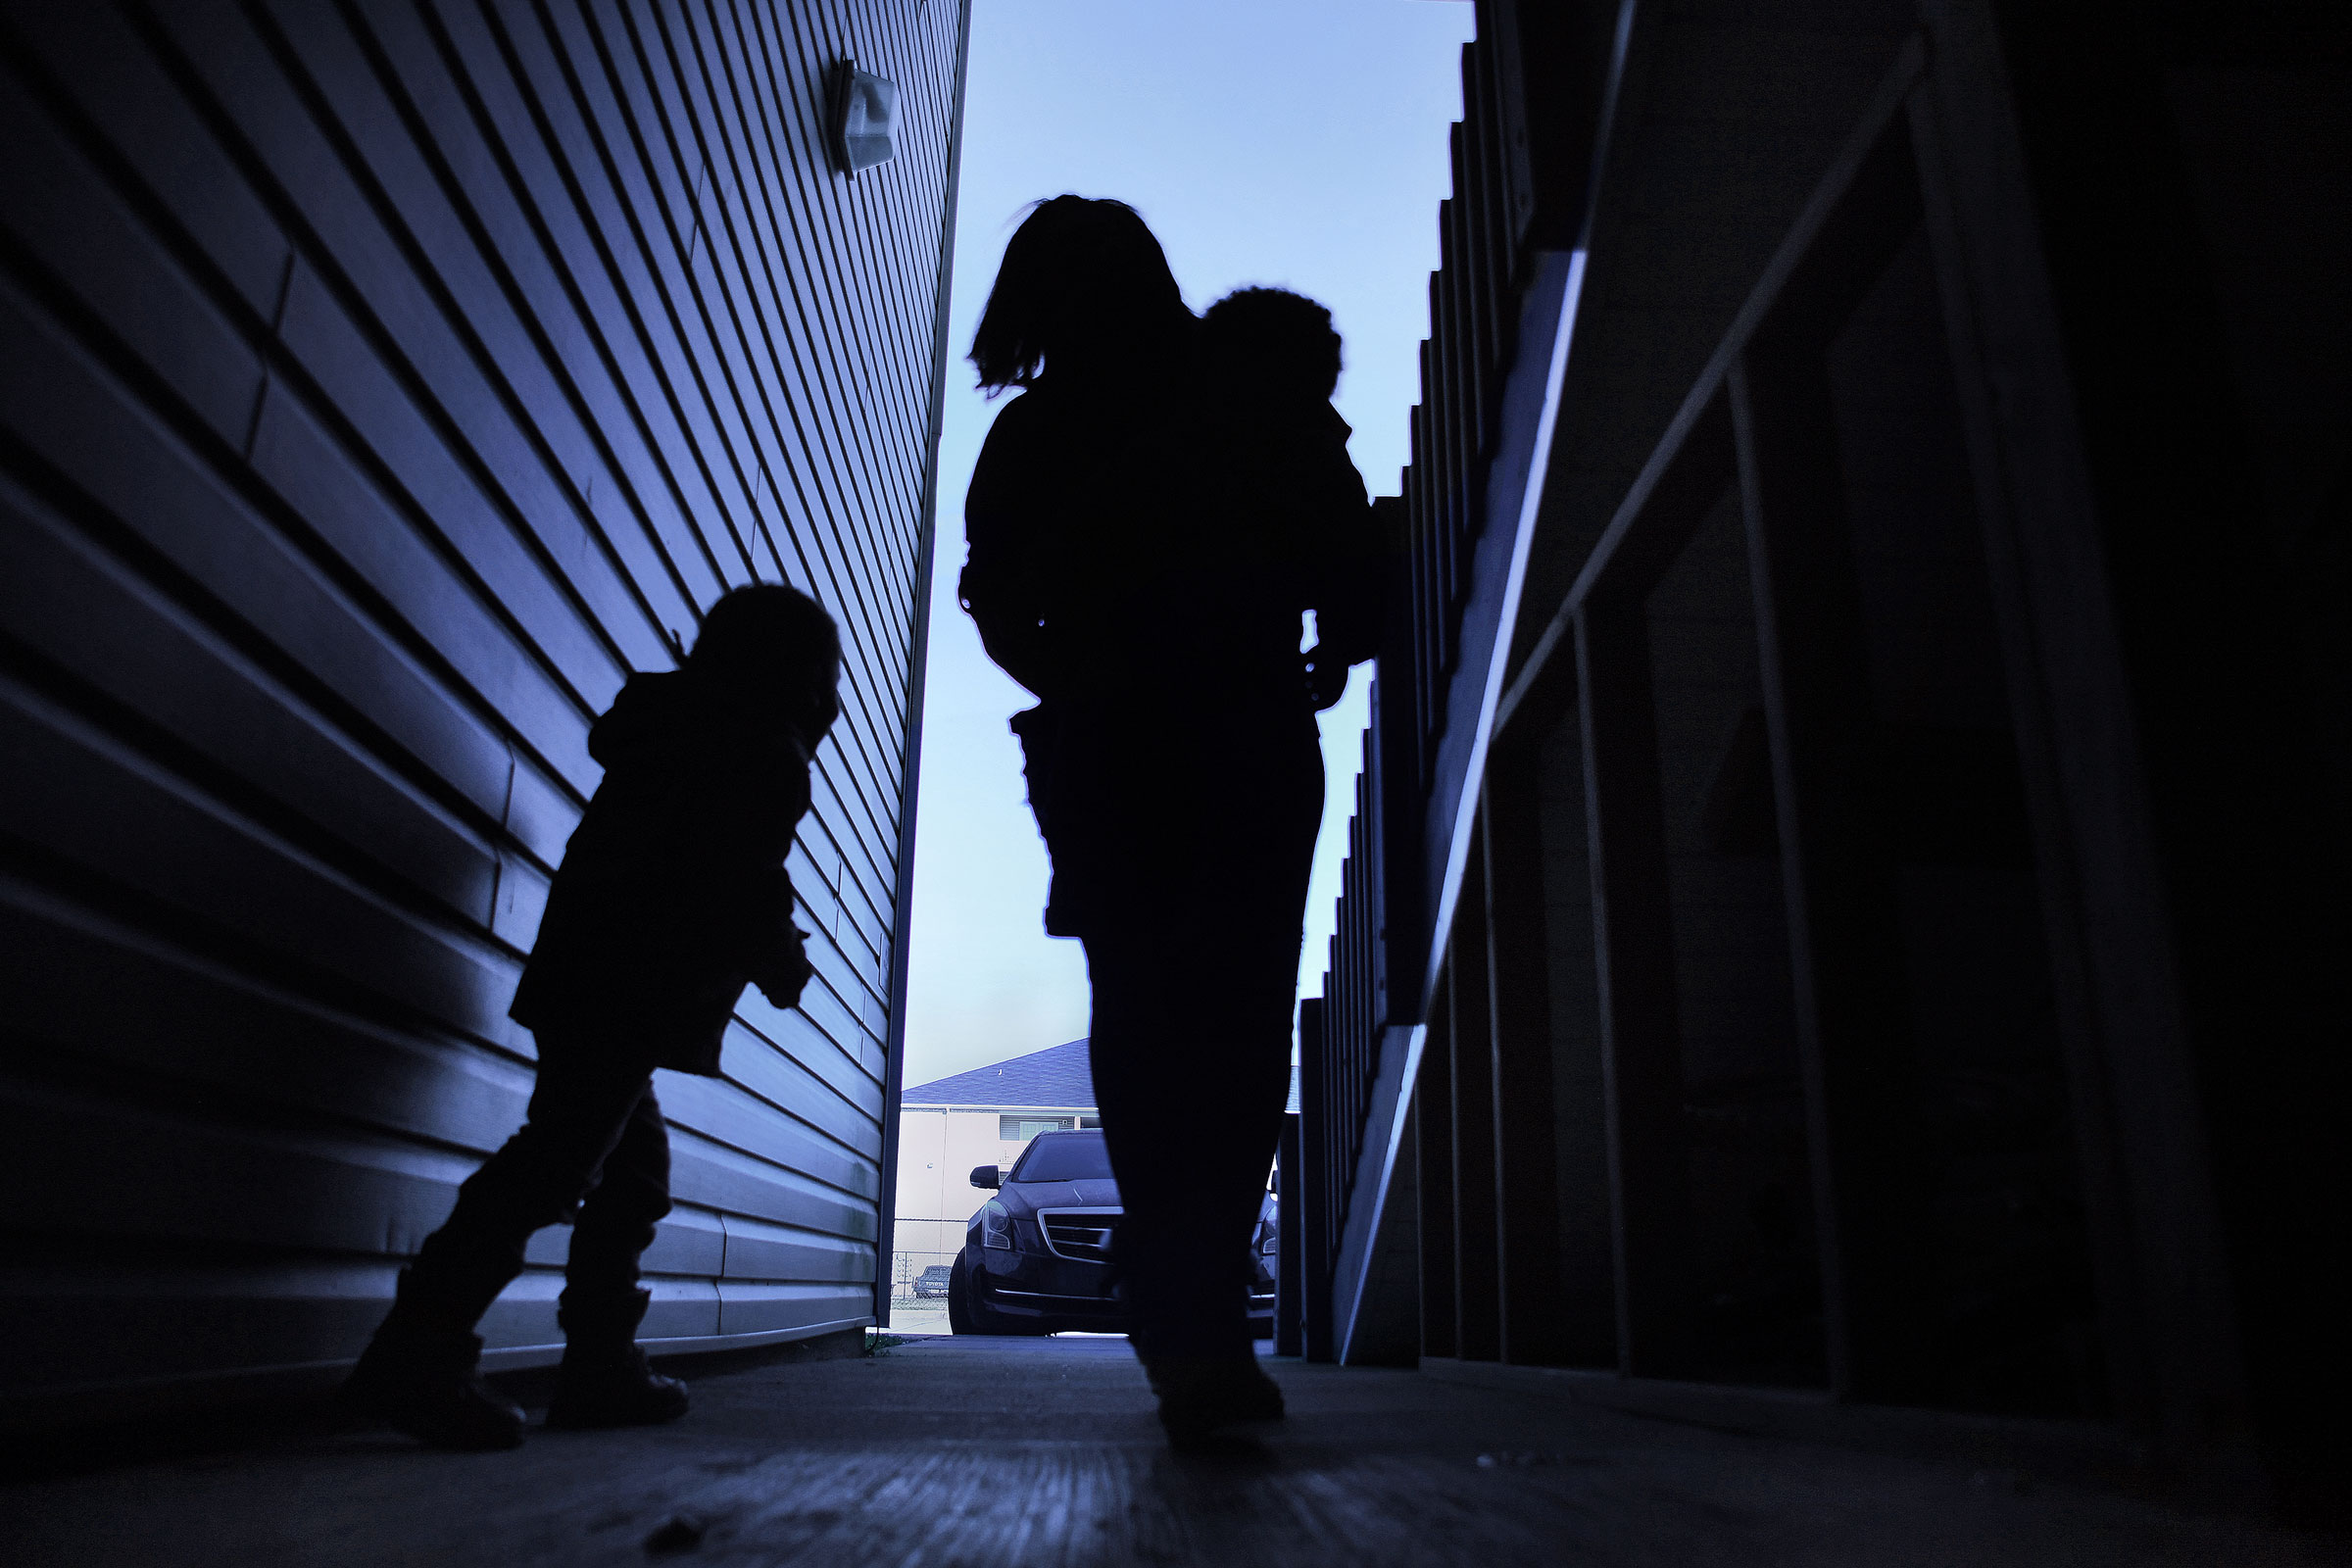 a silhouette of a mother walking with her two children, one on her hip, through an apartment complex